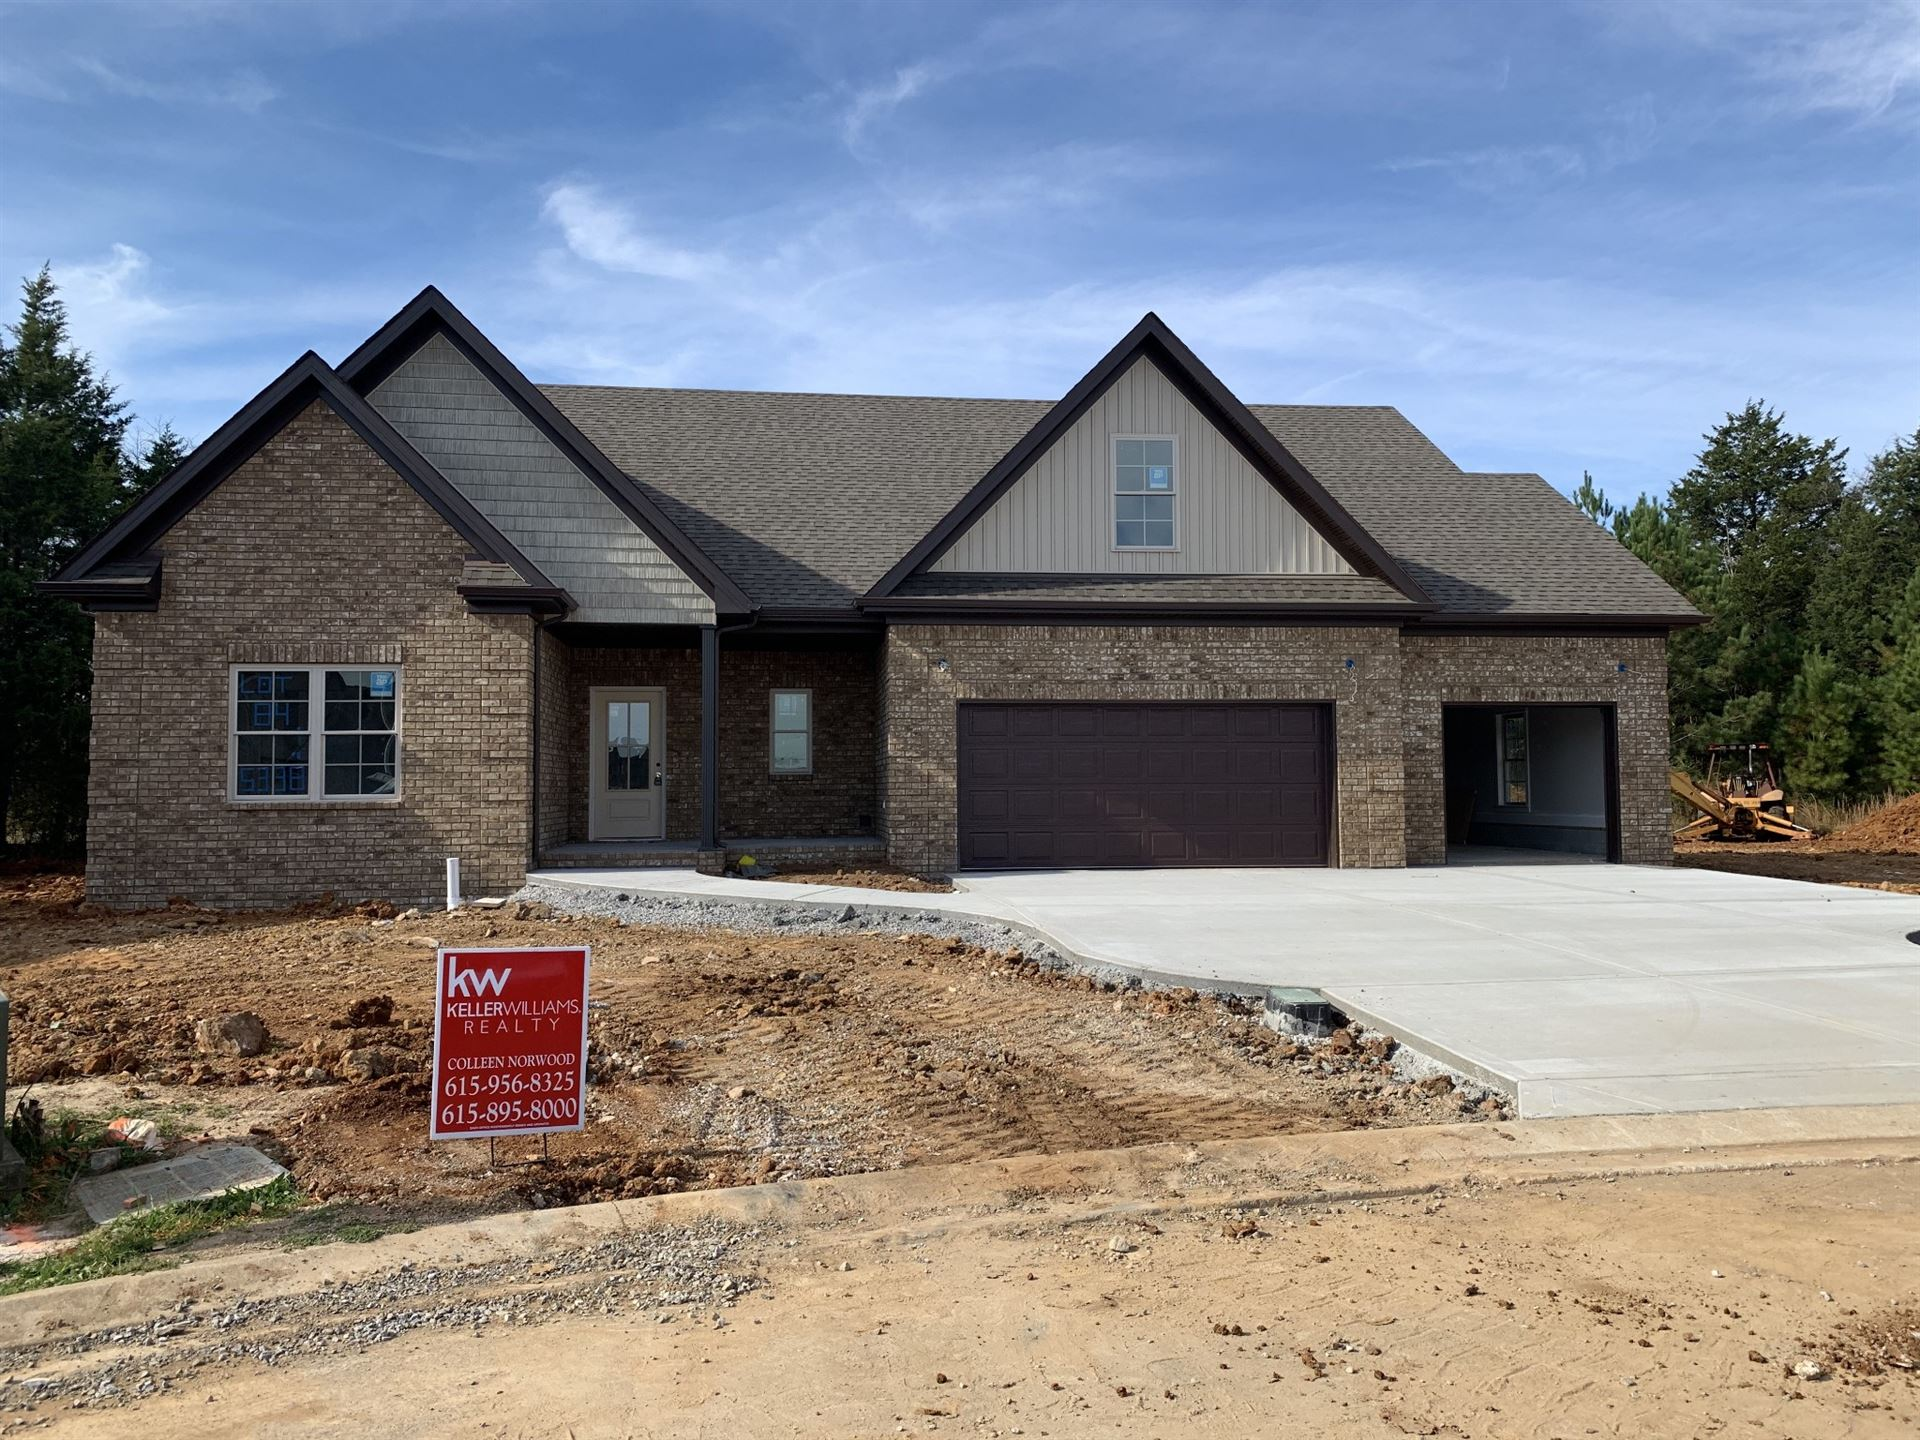 5338 Honeybee Dr, Murfreesboro, TN 37129 - MLS#: 2208747